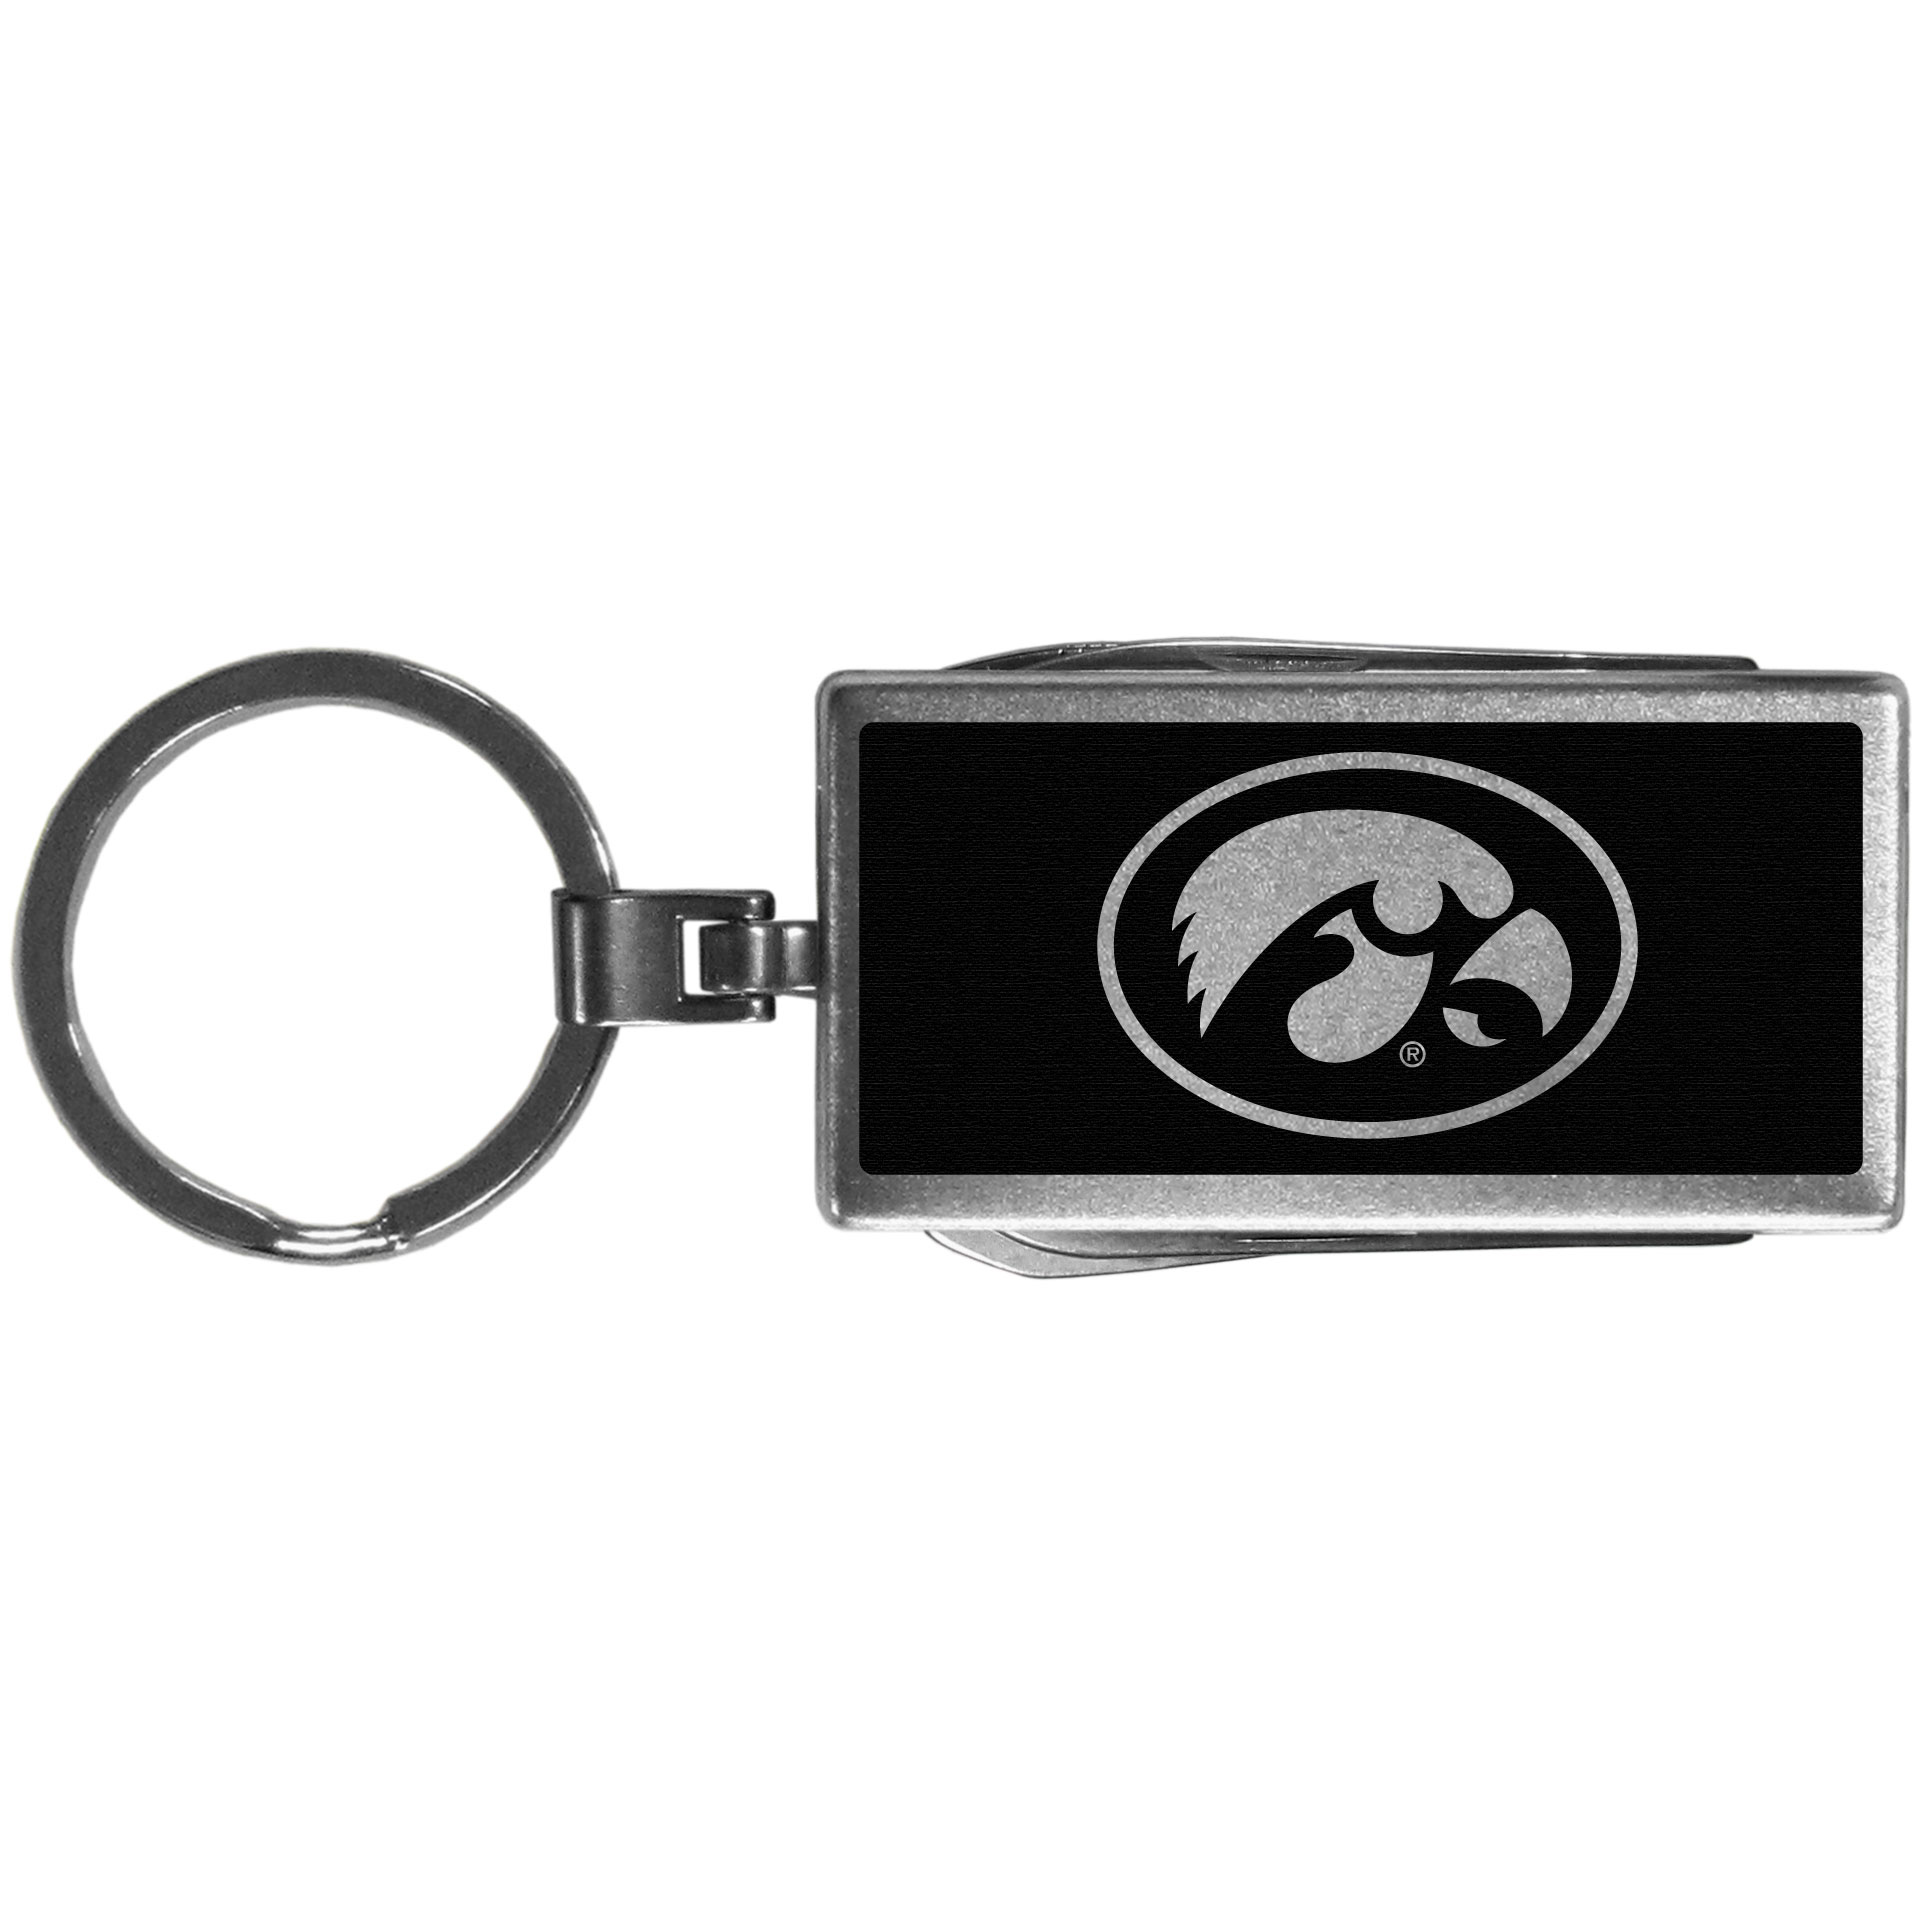 Iowa Hawkeyes Multi-tool Key Chain, Black - Be the hero at the tailgate, camping, or on a Friday night with your Iowa Hawkeyes Multi-Tool Keychain which comes complete with bottle opener, scissors, knife, nail file and screw driver. Be it opening a package or a beverage Siskiyou's Multi-Tool Keychain goes wherever your keys do. The keychain hangs at 4 inches long when closed.